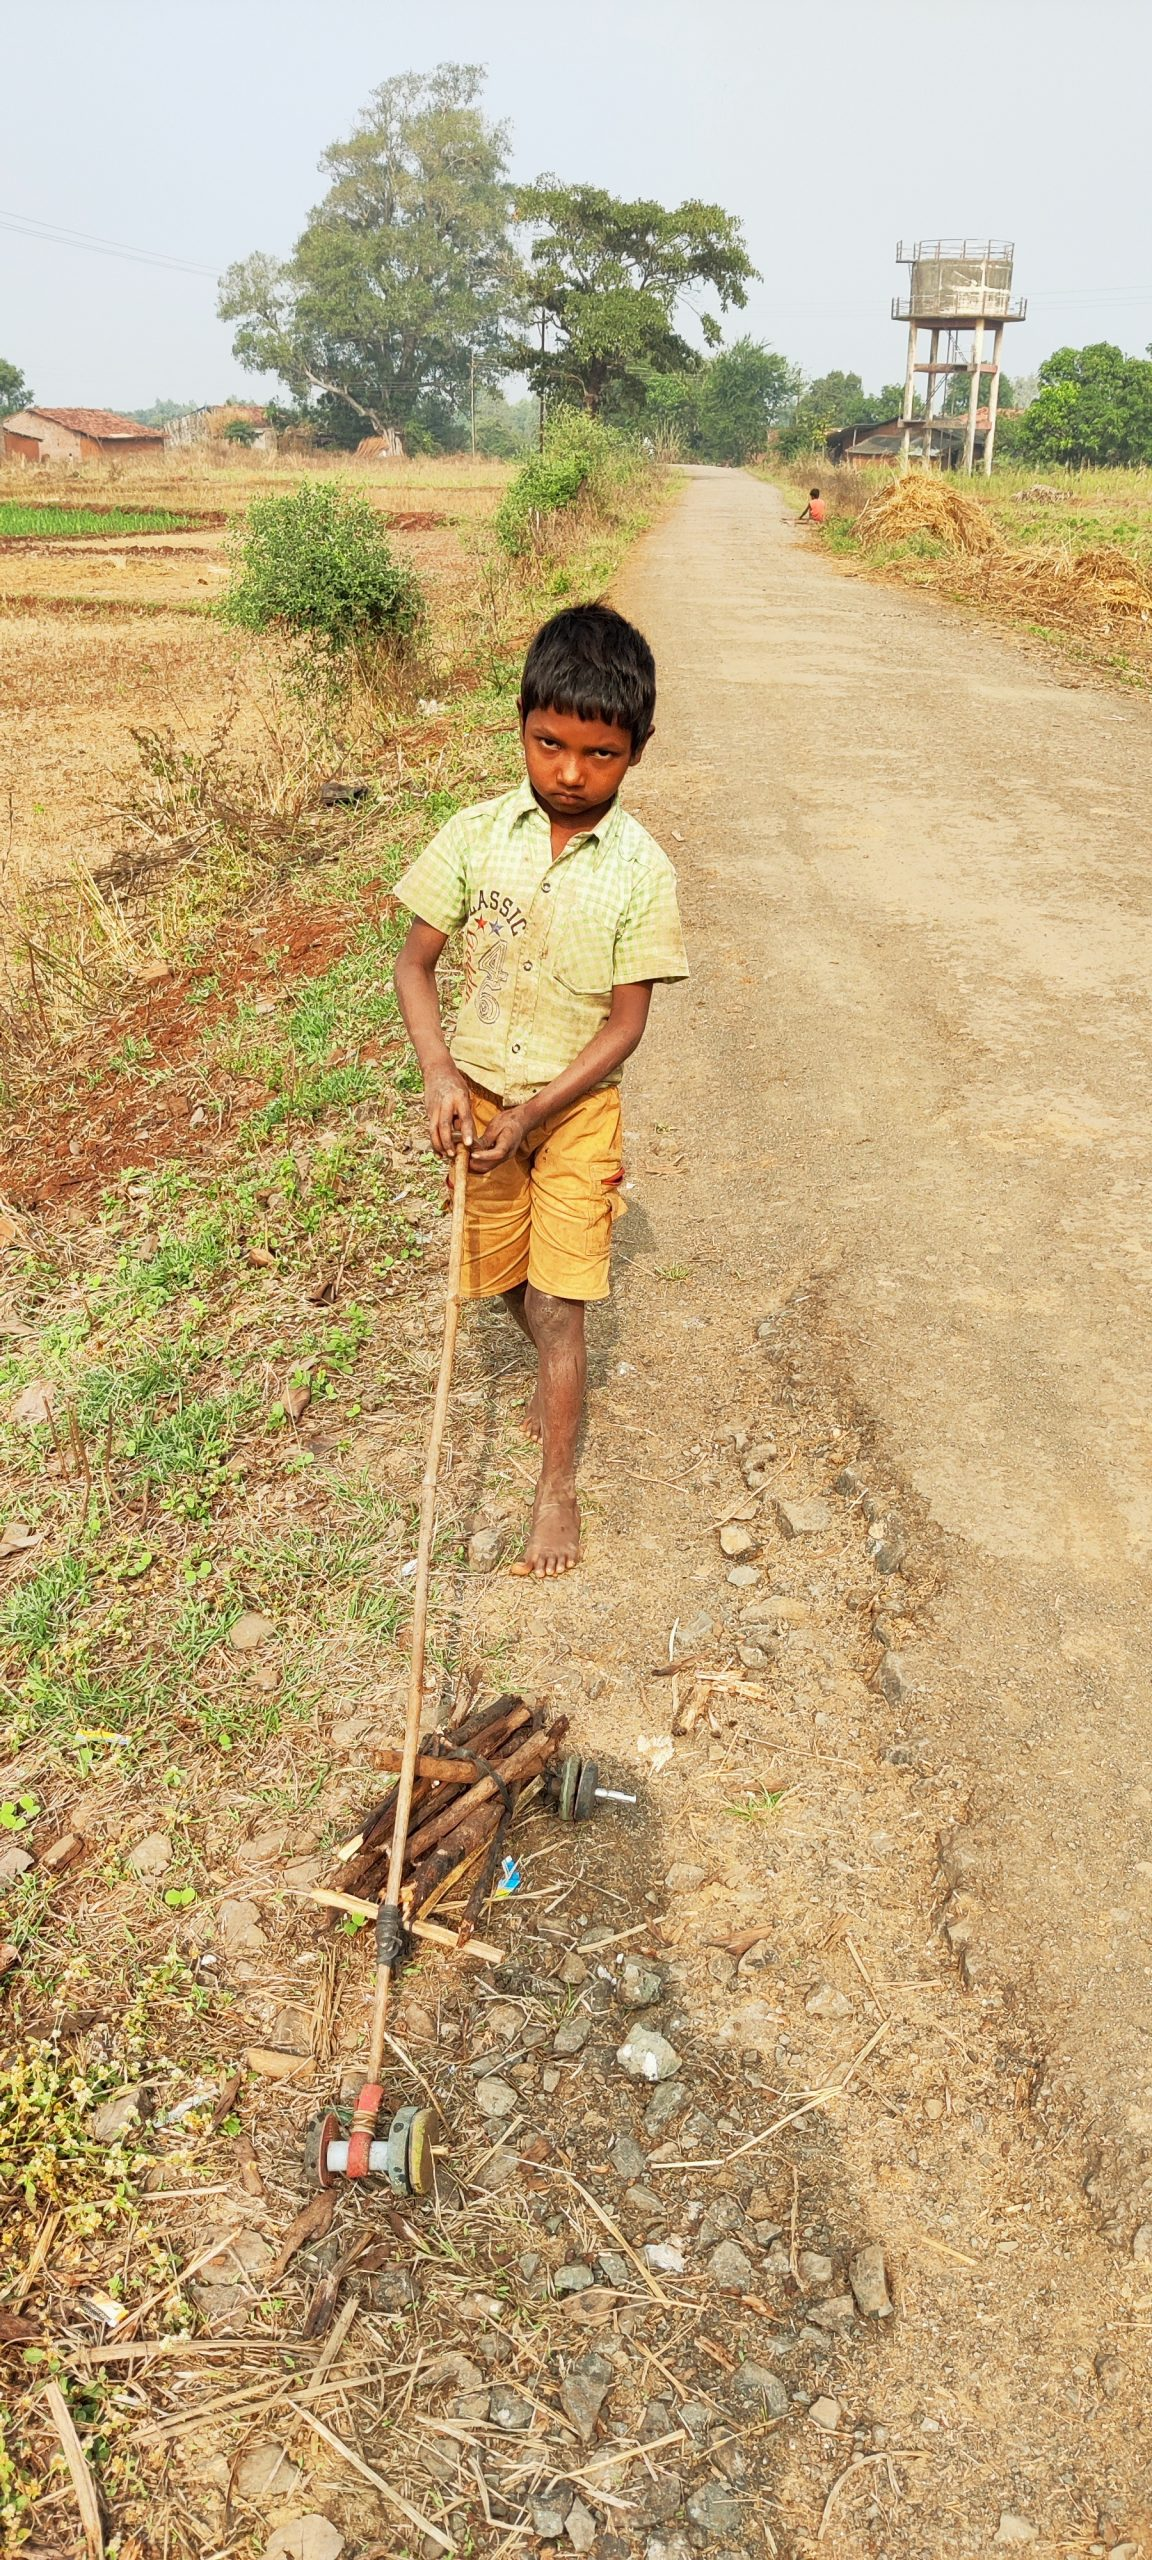 Boy rooling his wooden toy on ground in the farm